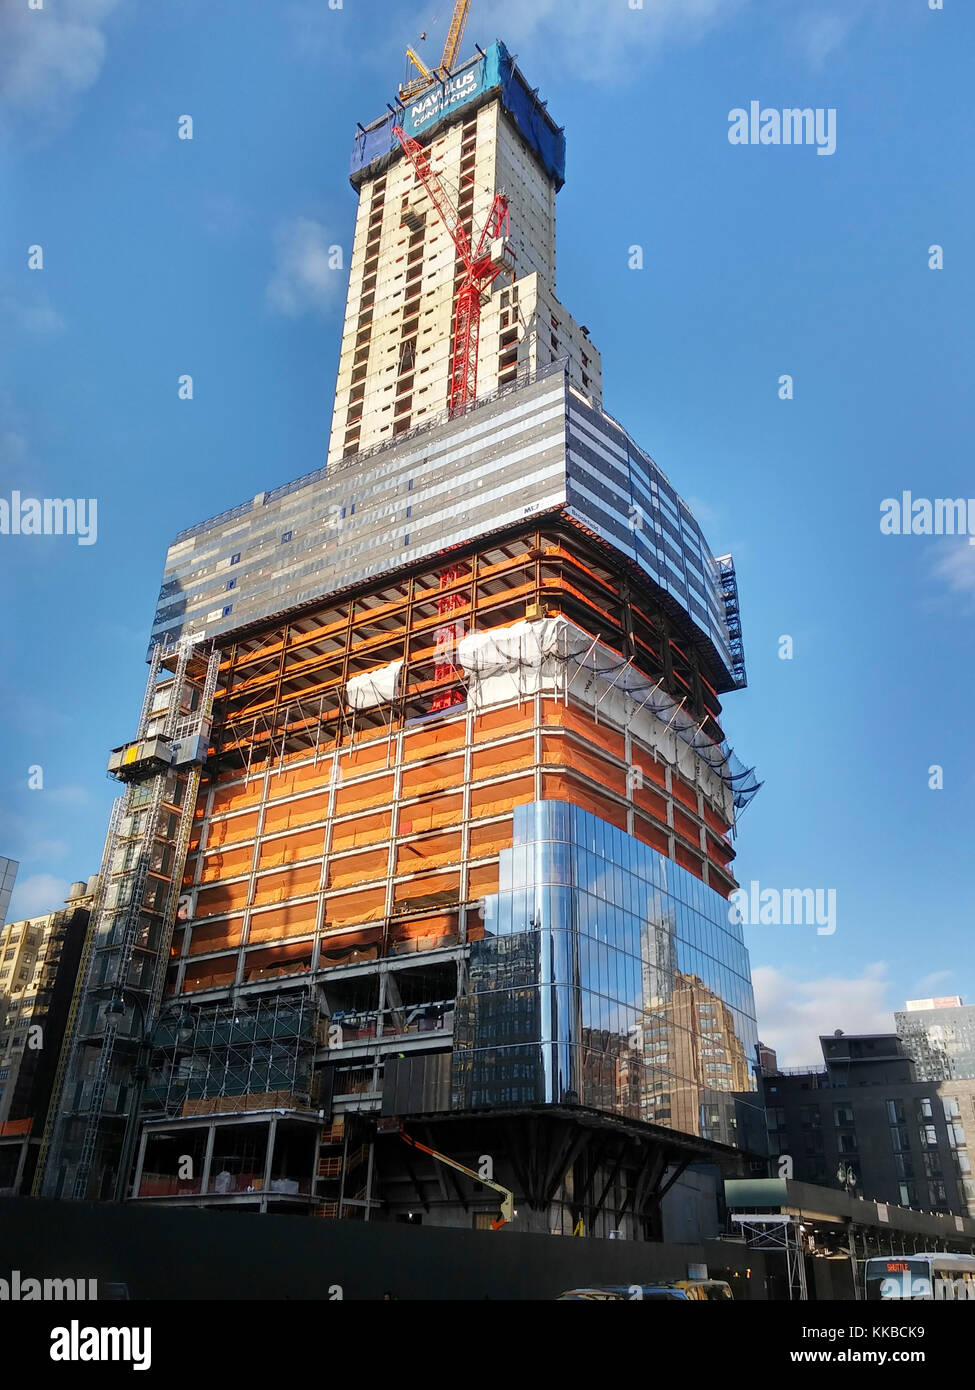 Brookfield's Manhattan West development in New York on Tuesday, November 28, 2017. Navillus, the site contractor, Stock Photo